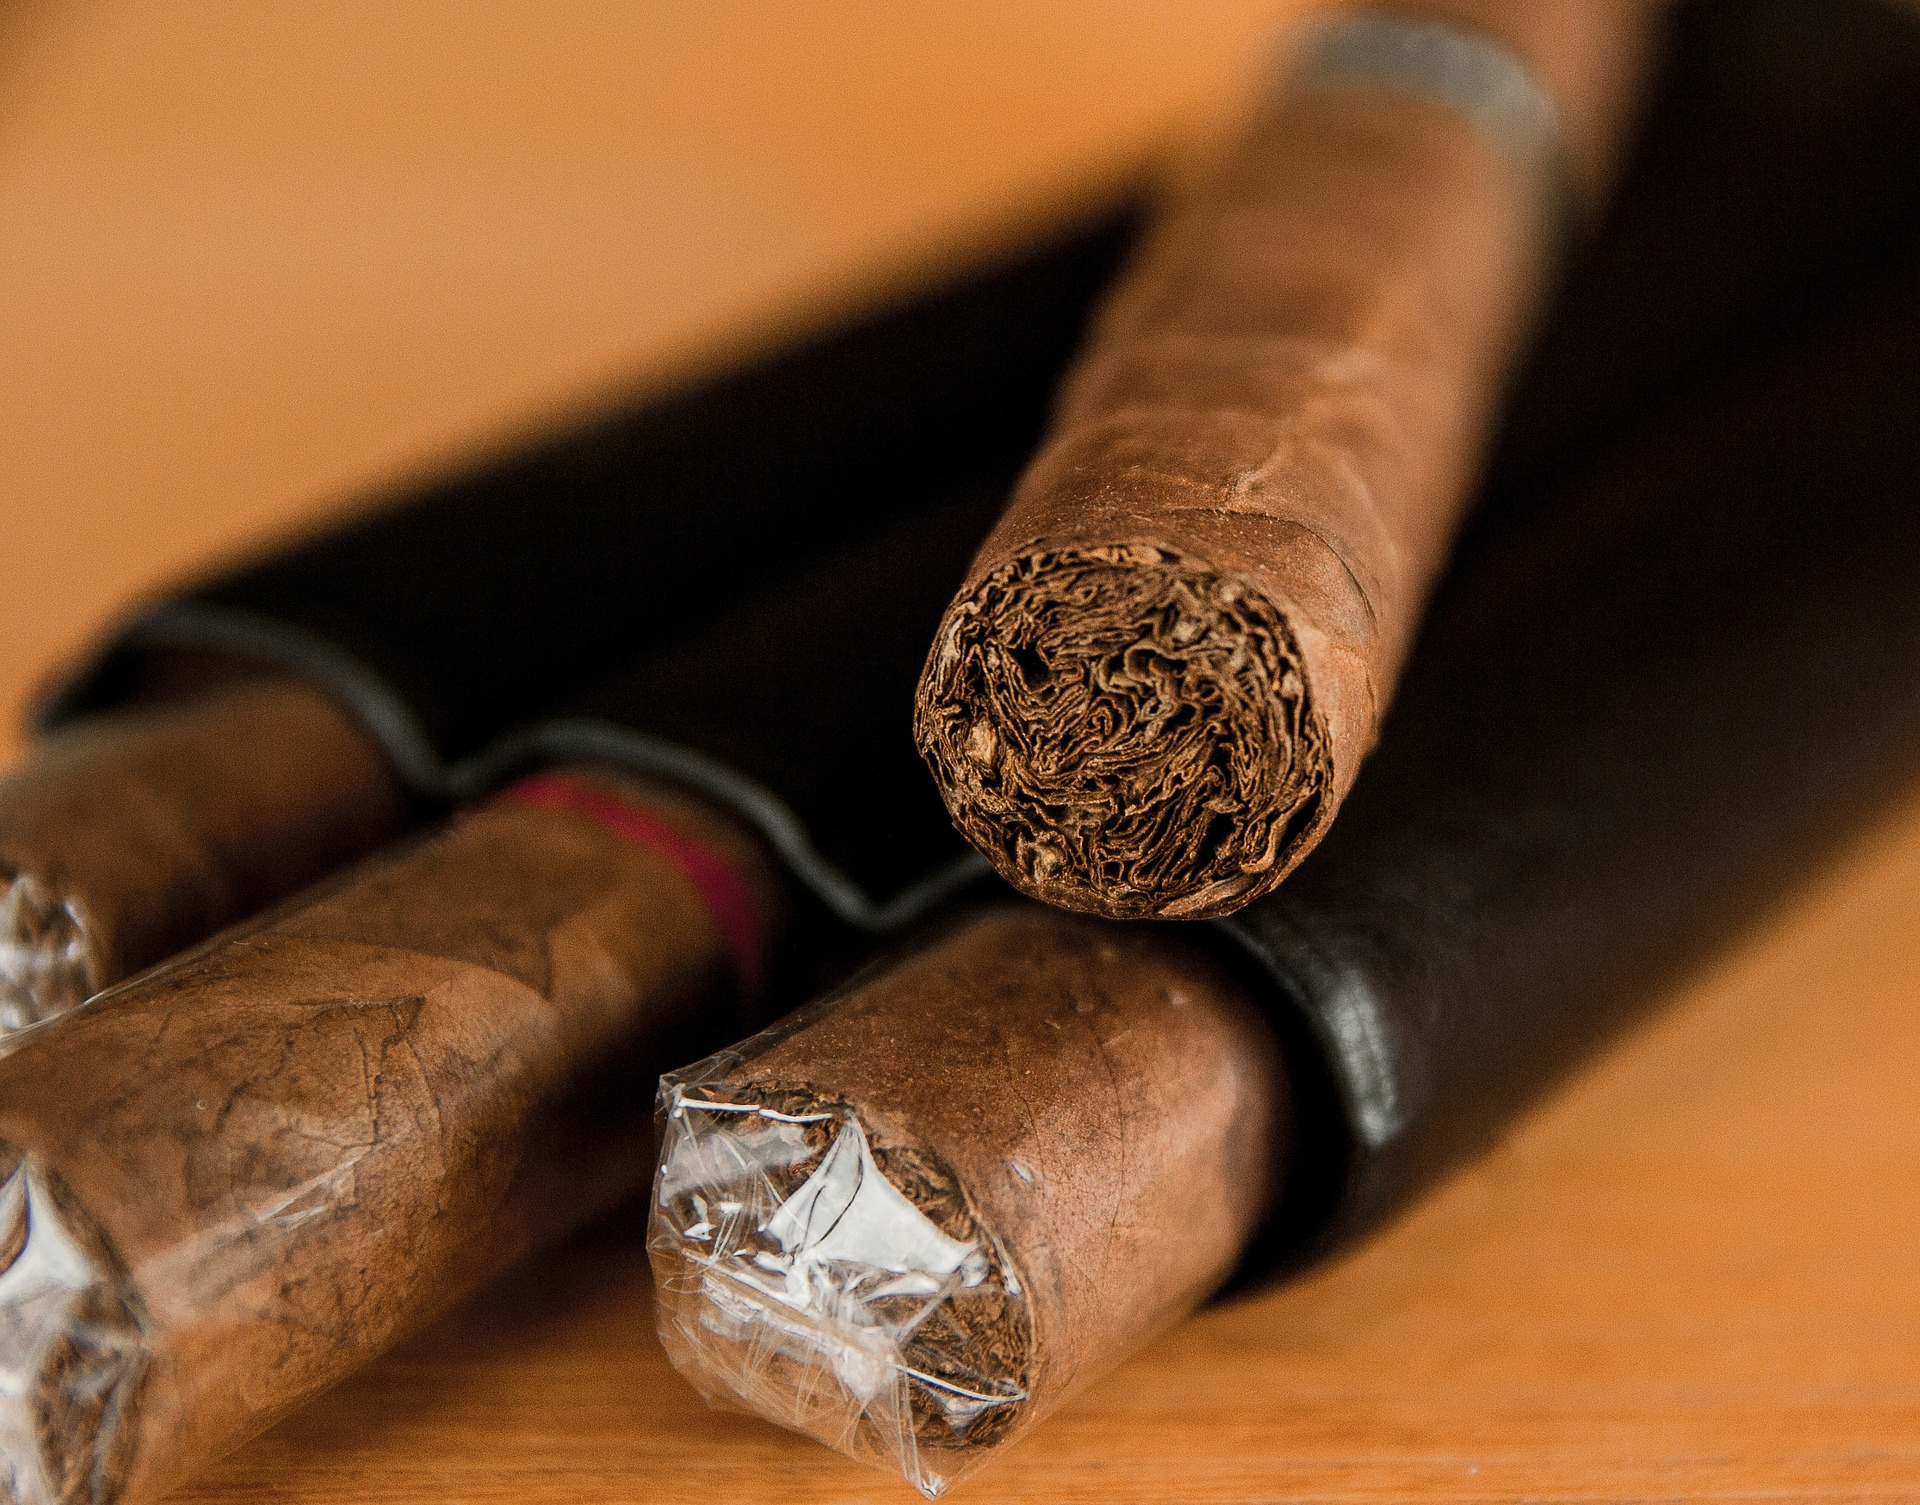 A pile of plastic wrapped cigars with an unwrapped cigar lying on top